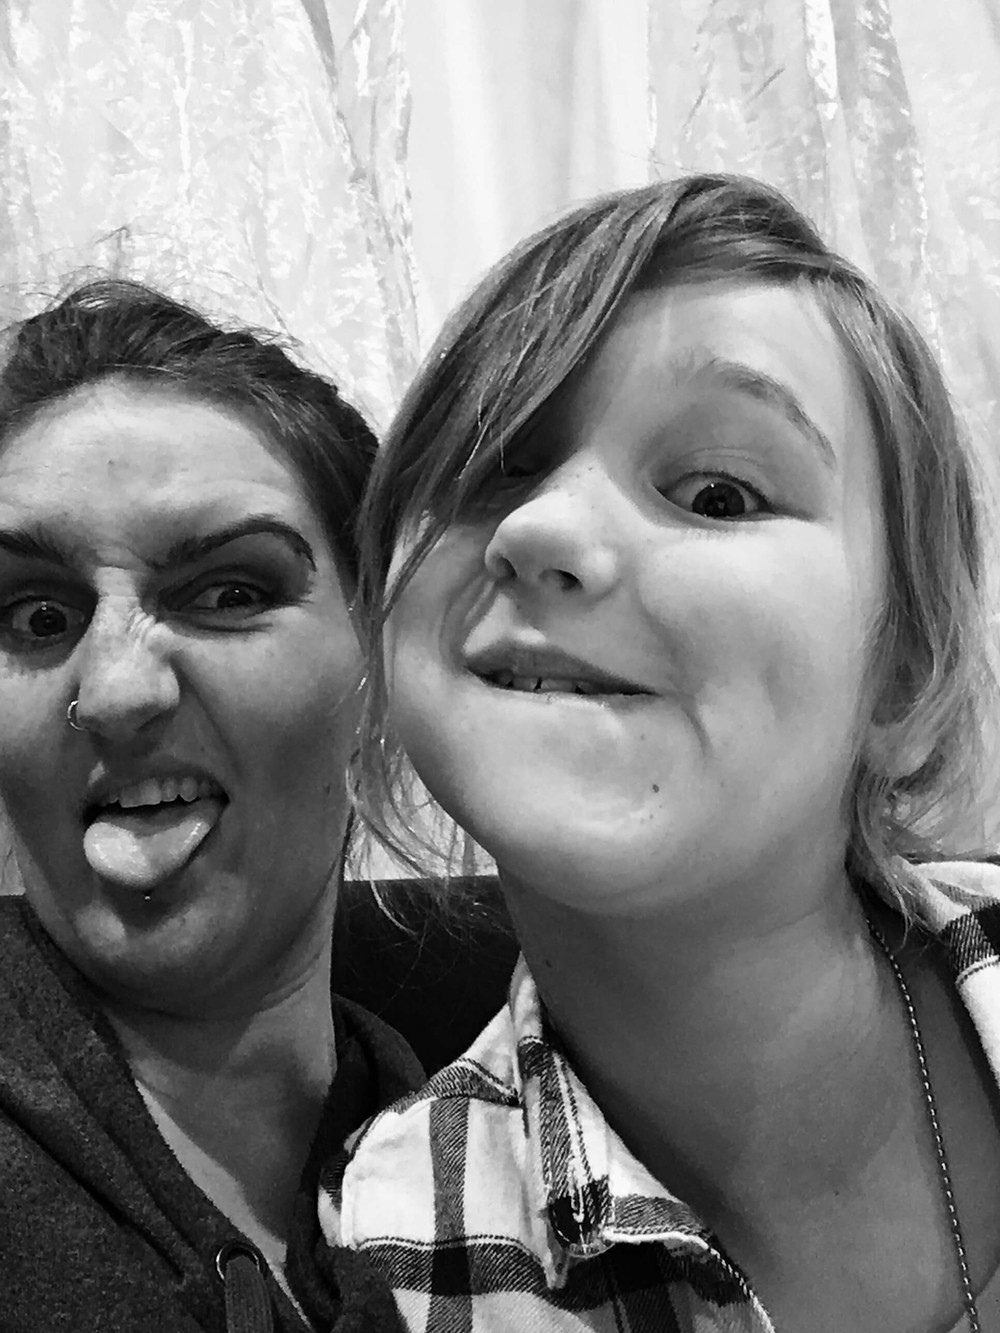 Josie and Emily Rigz taking silly selfies